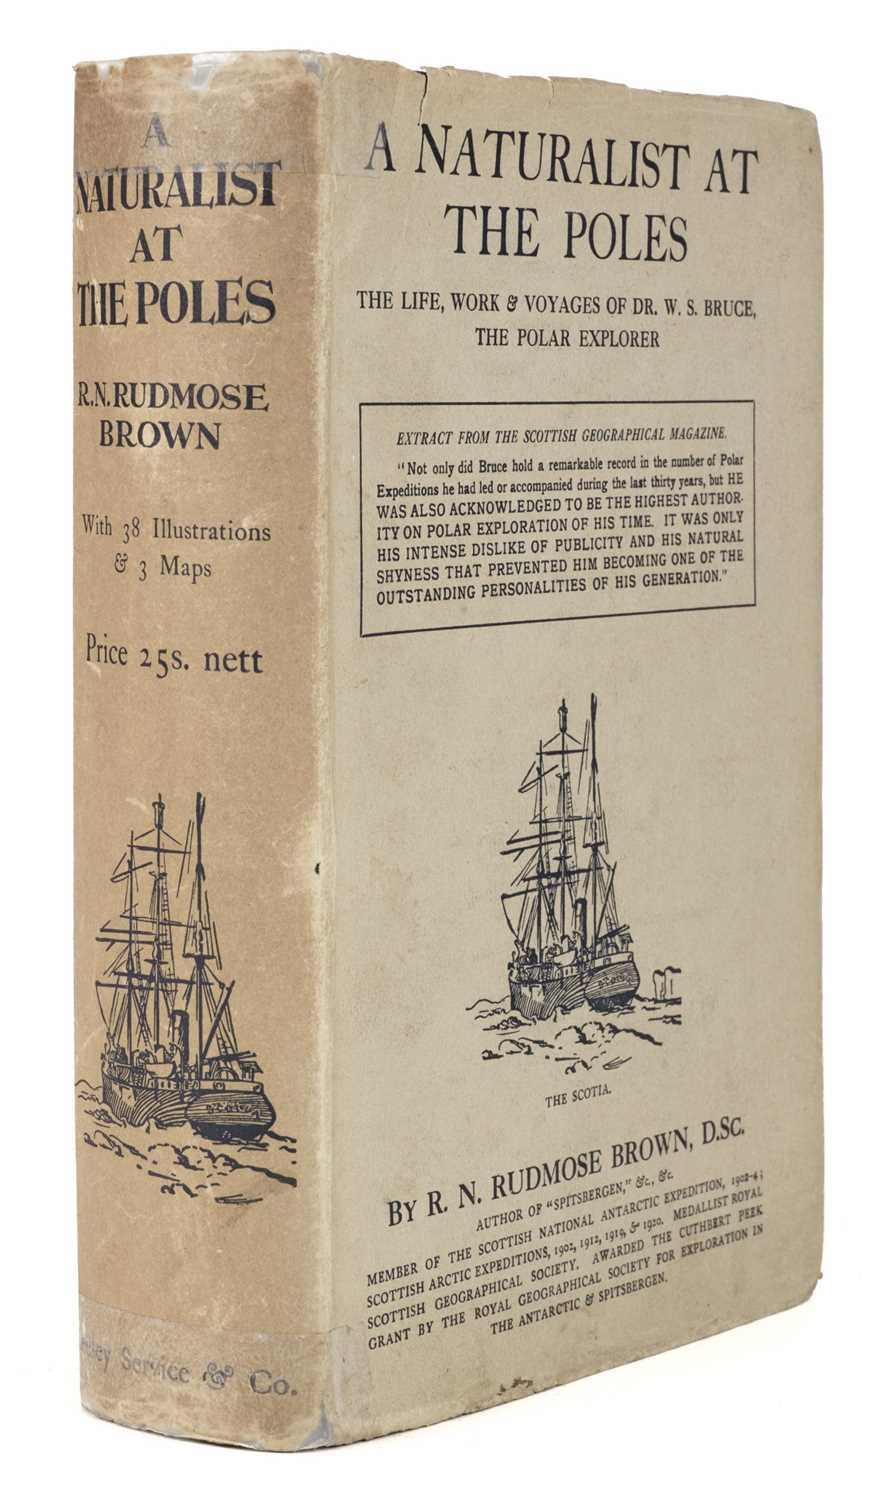 Lot 6 - Brown (R. N. Rudmose). A Naturalist at the Poles, 1st edition, 1923, with the dust jacket